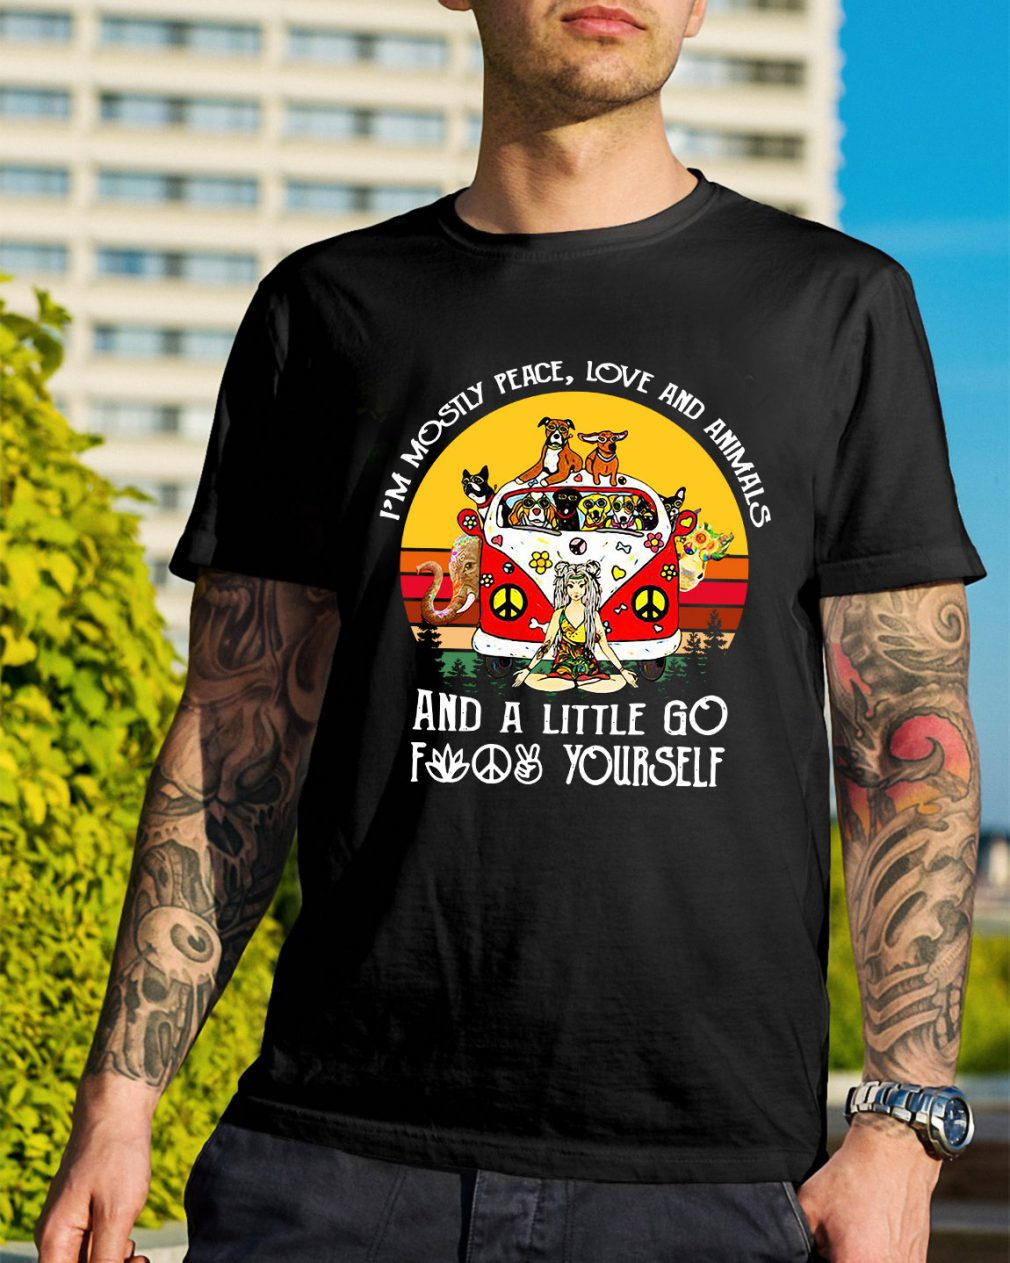 I'm Mostly peace love and animals and a little go fuck yourself shirt